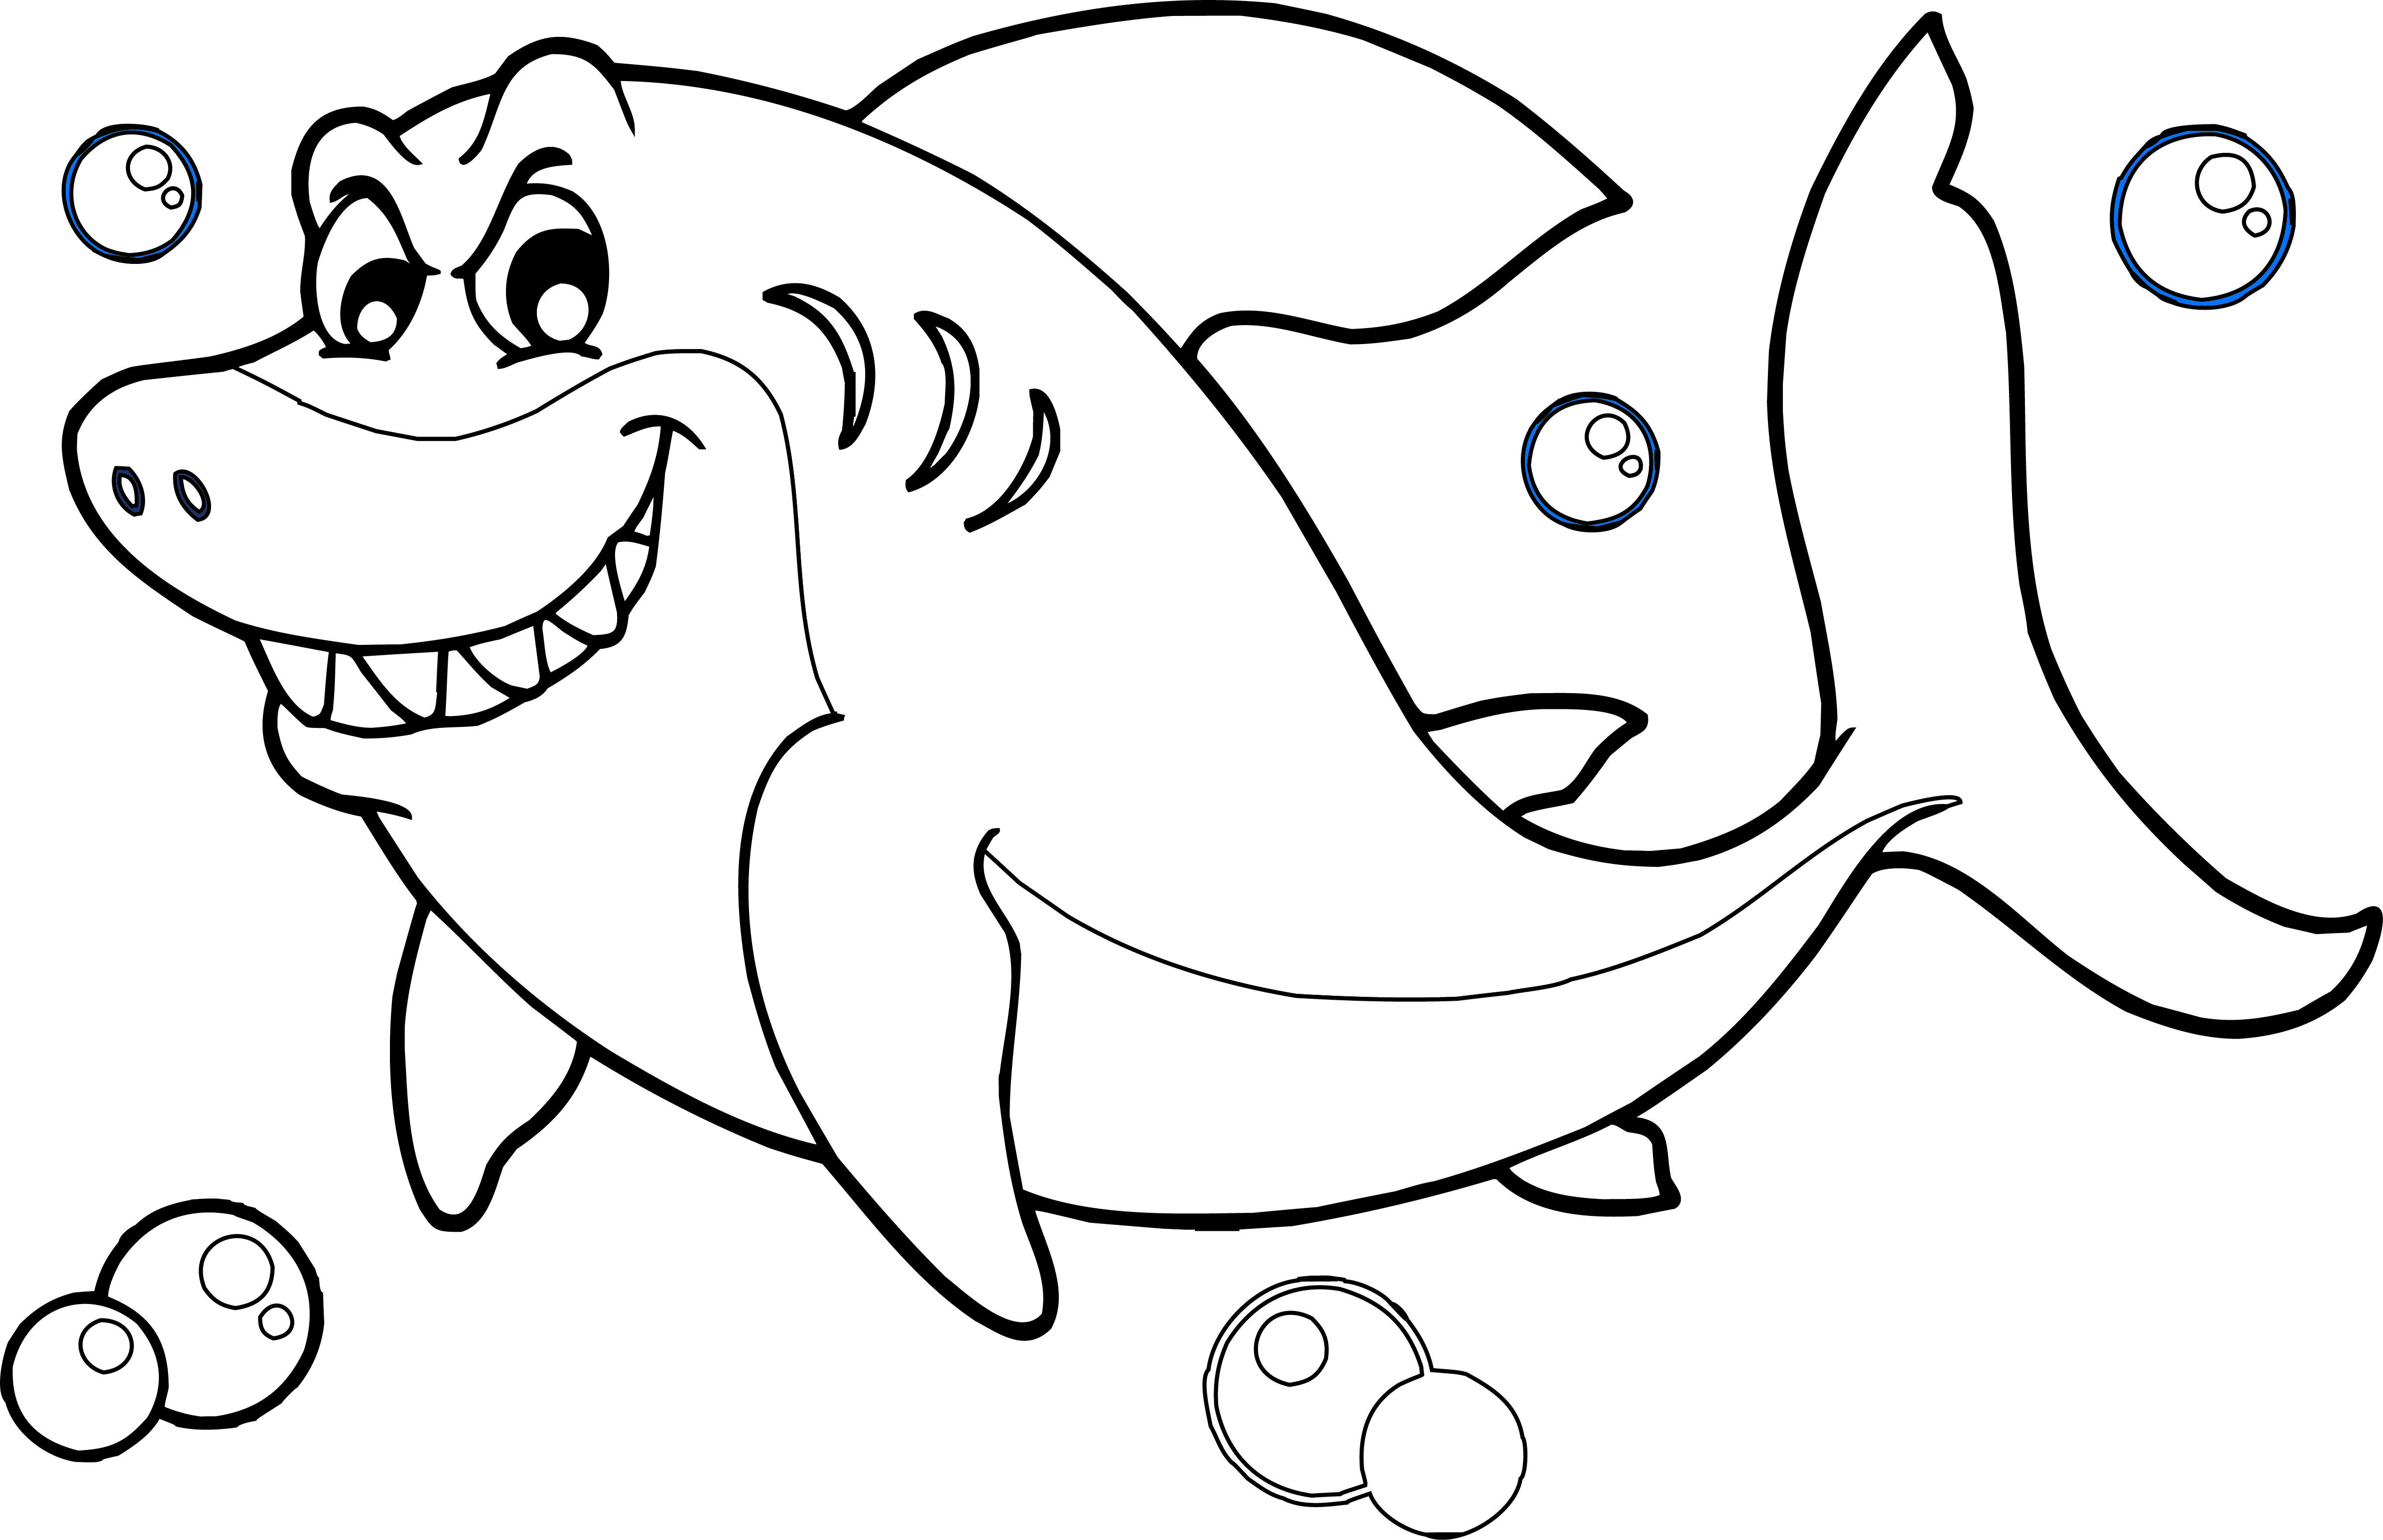 Shark Coloring Pages | Shark coloring pages, Coloring books, Coloring pages